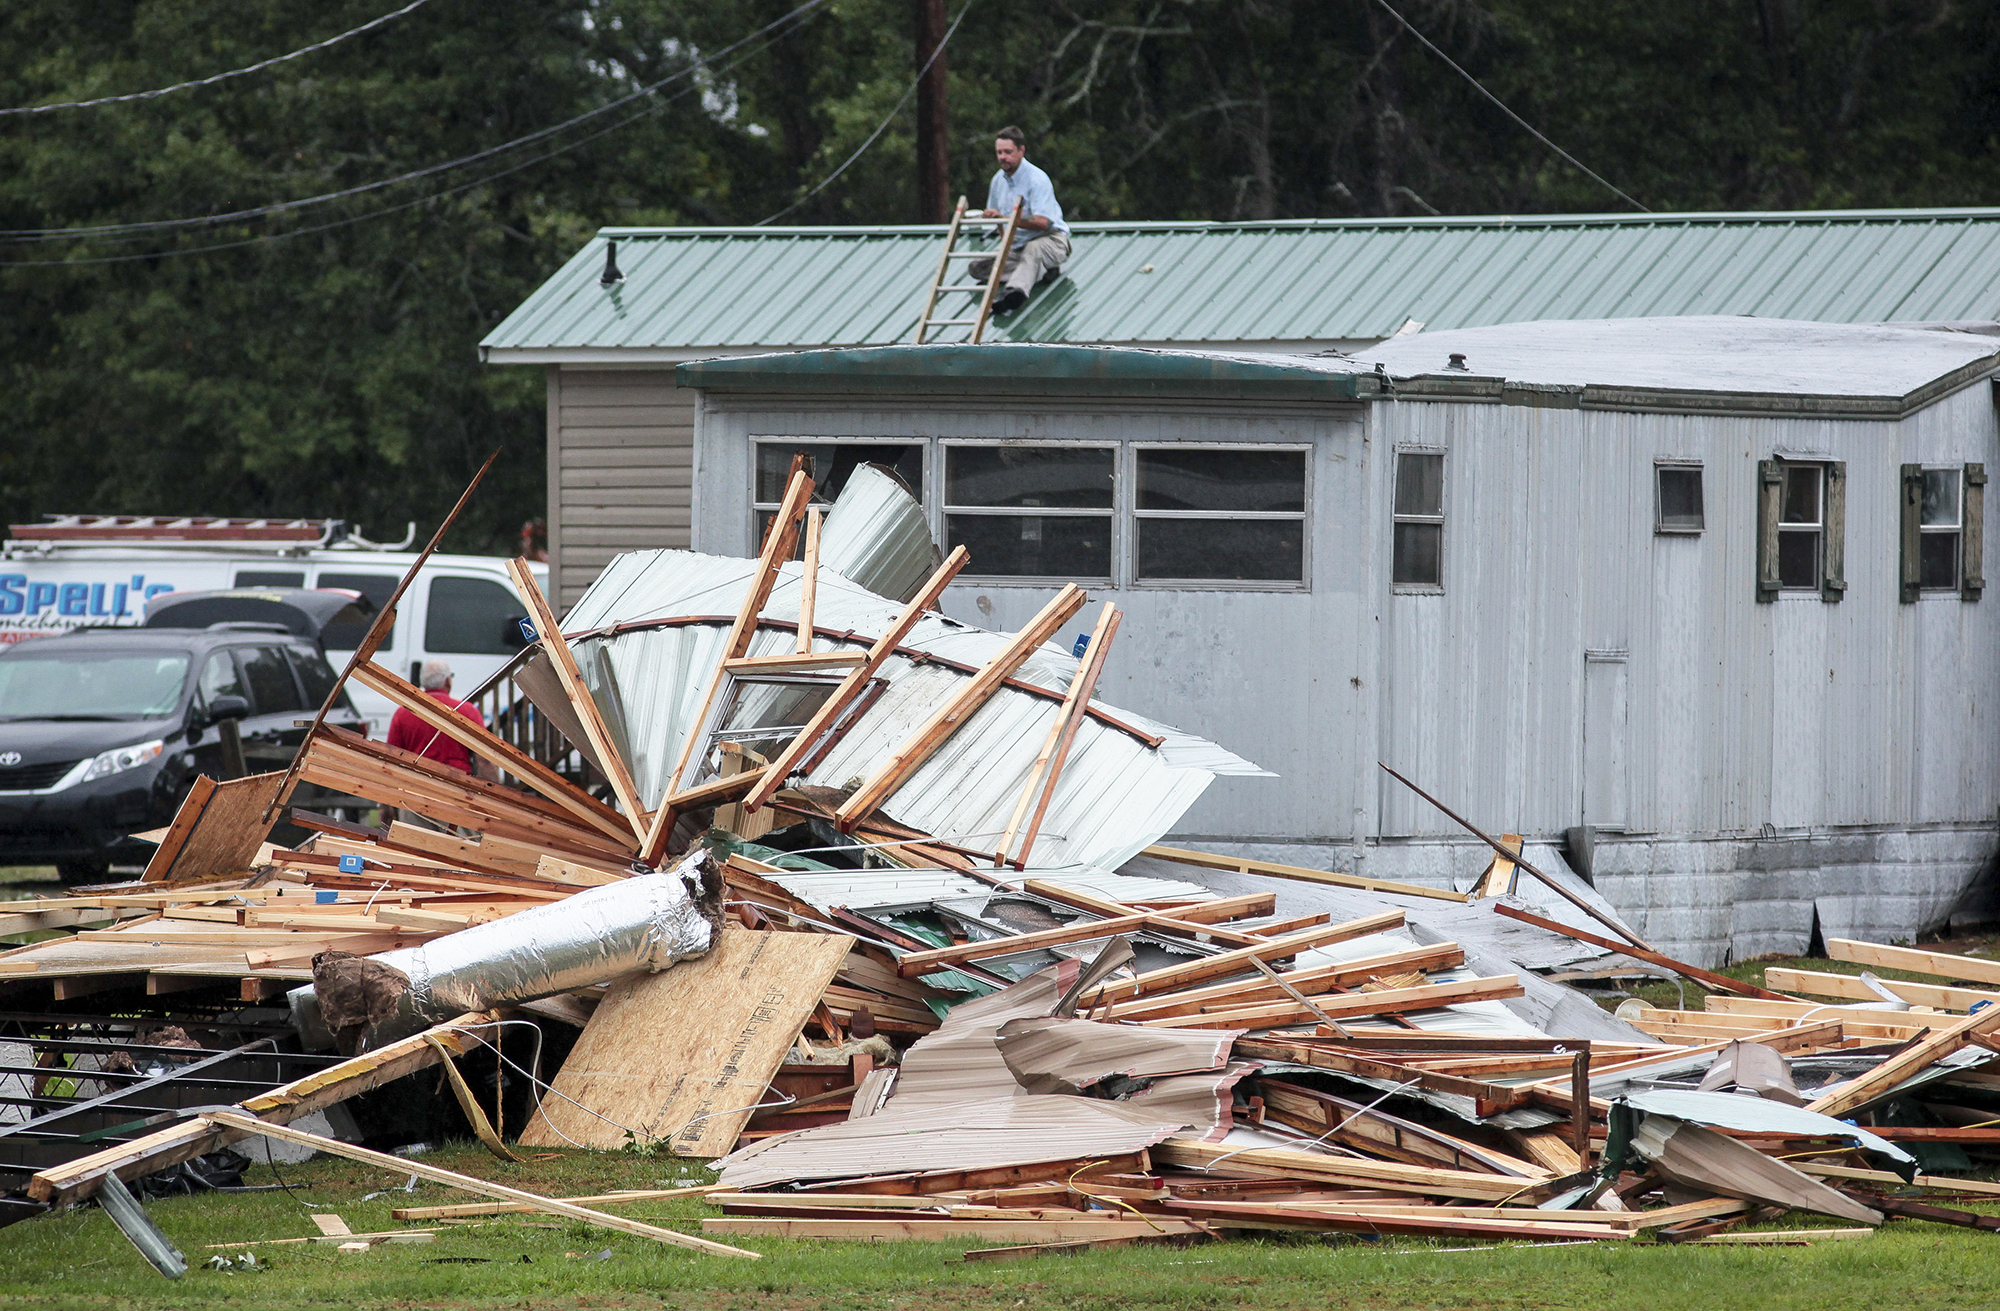 A man patches holes in his roof after a possible tornado destroyed parts of a mobile home neighborhood and a volunteer fire station in Autryville, N.C., on May 23, 2017.